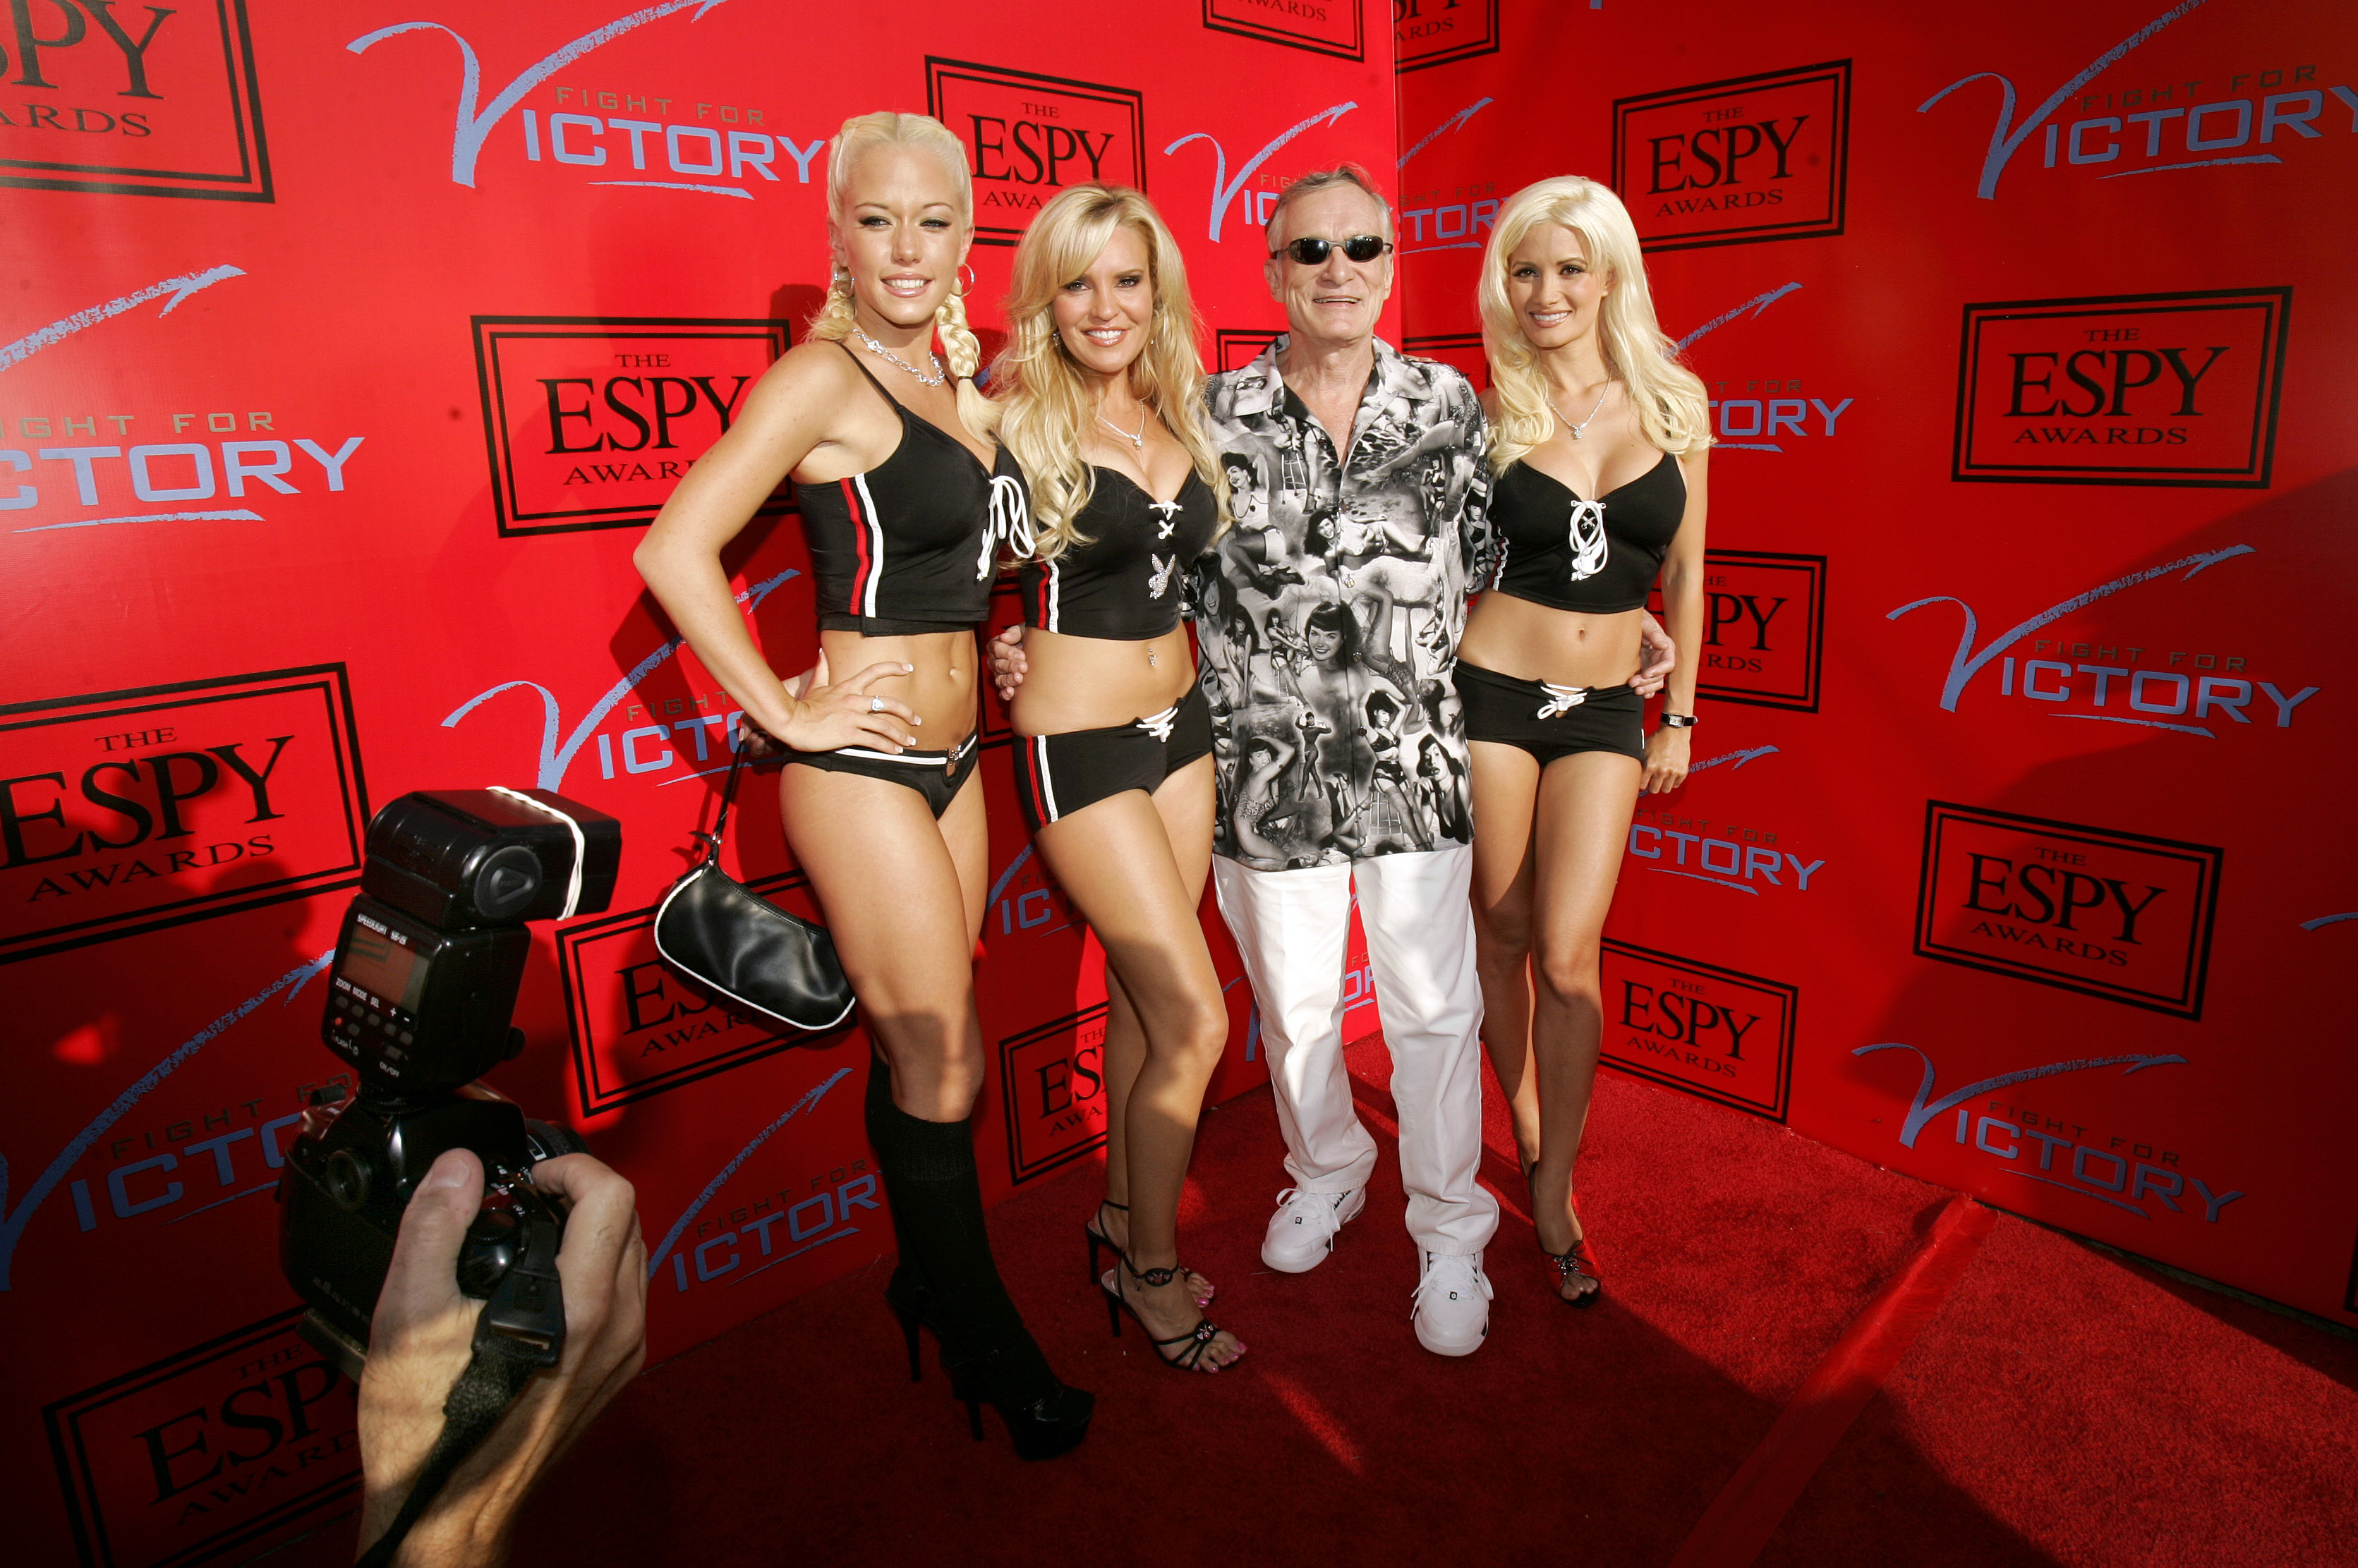 Hugh Hefner, Kendra Wilkinson, Bridget Marquardt i Holly Madison